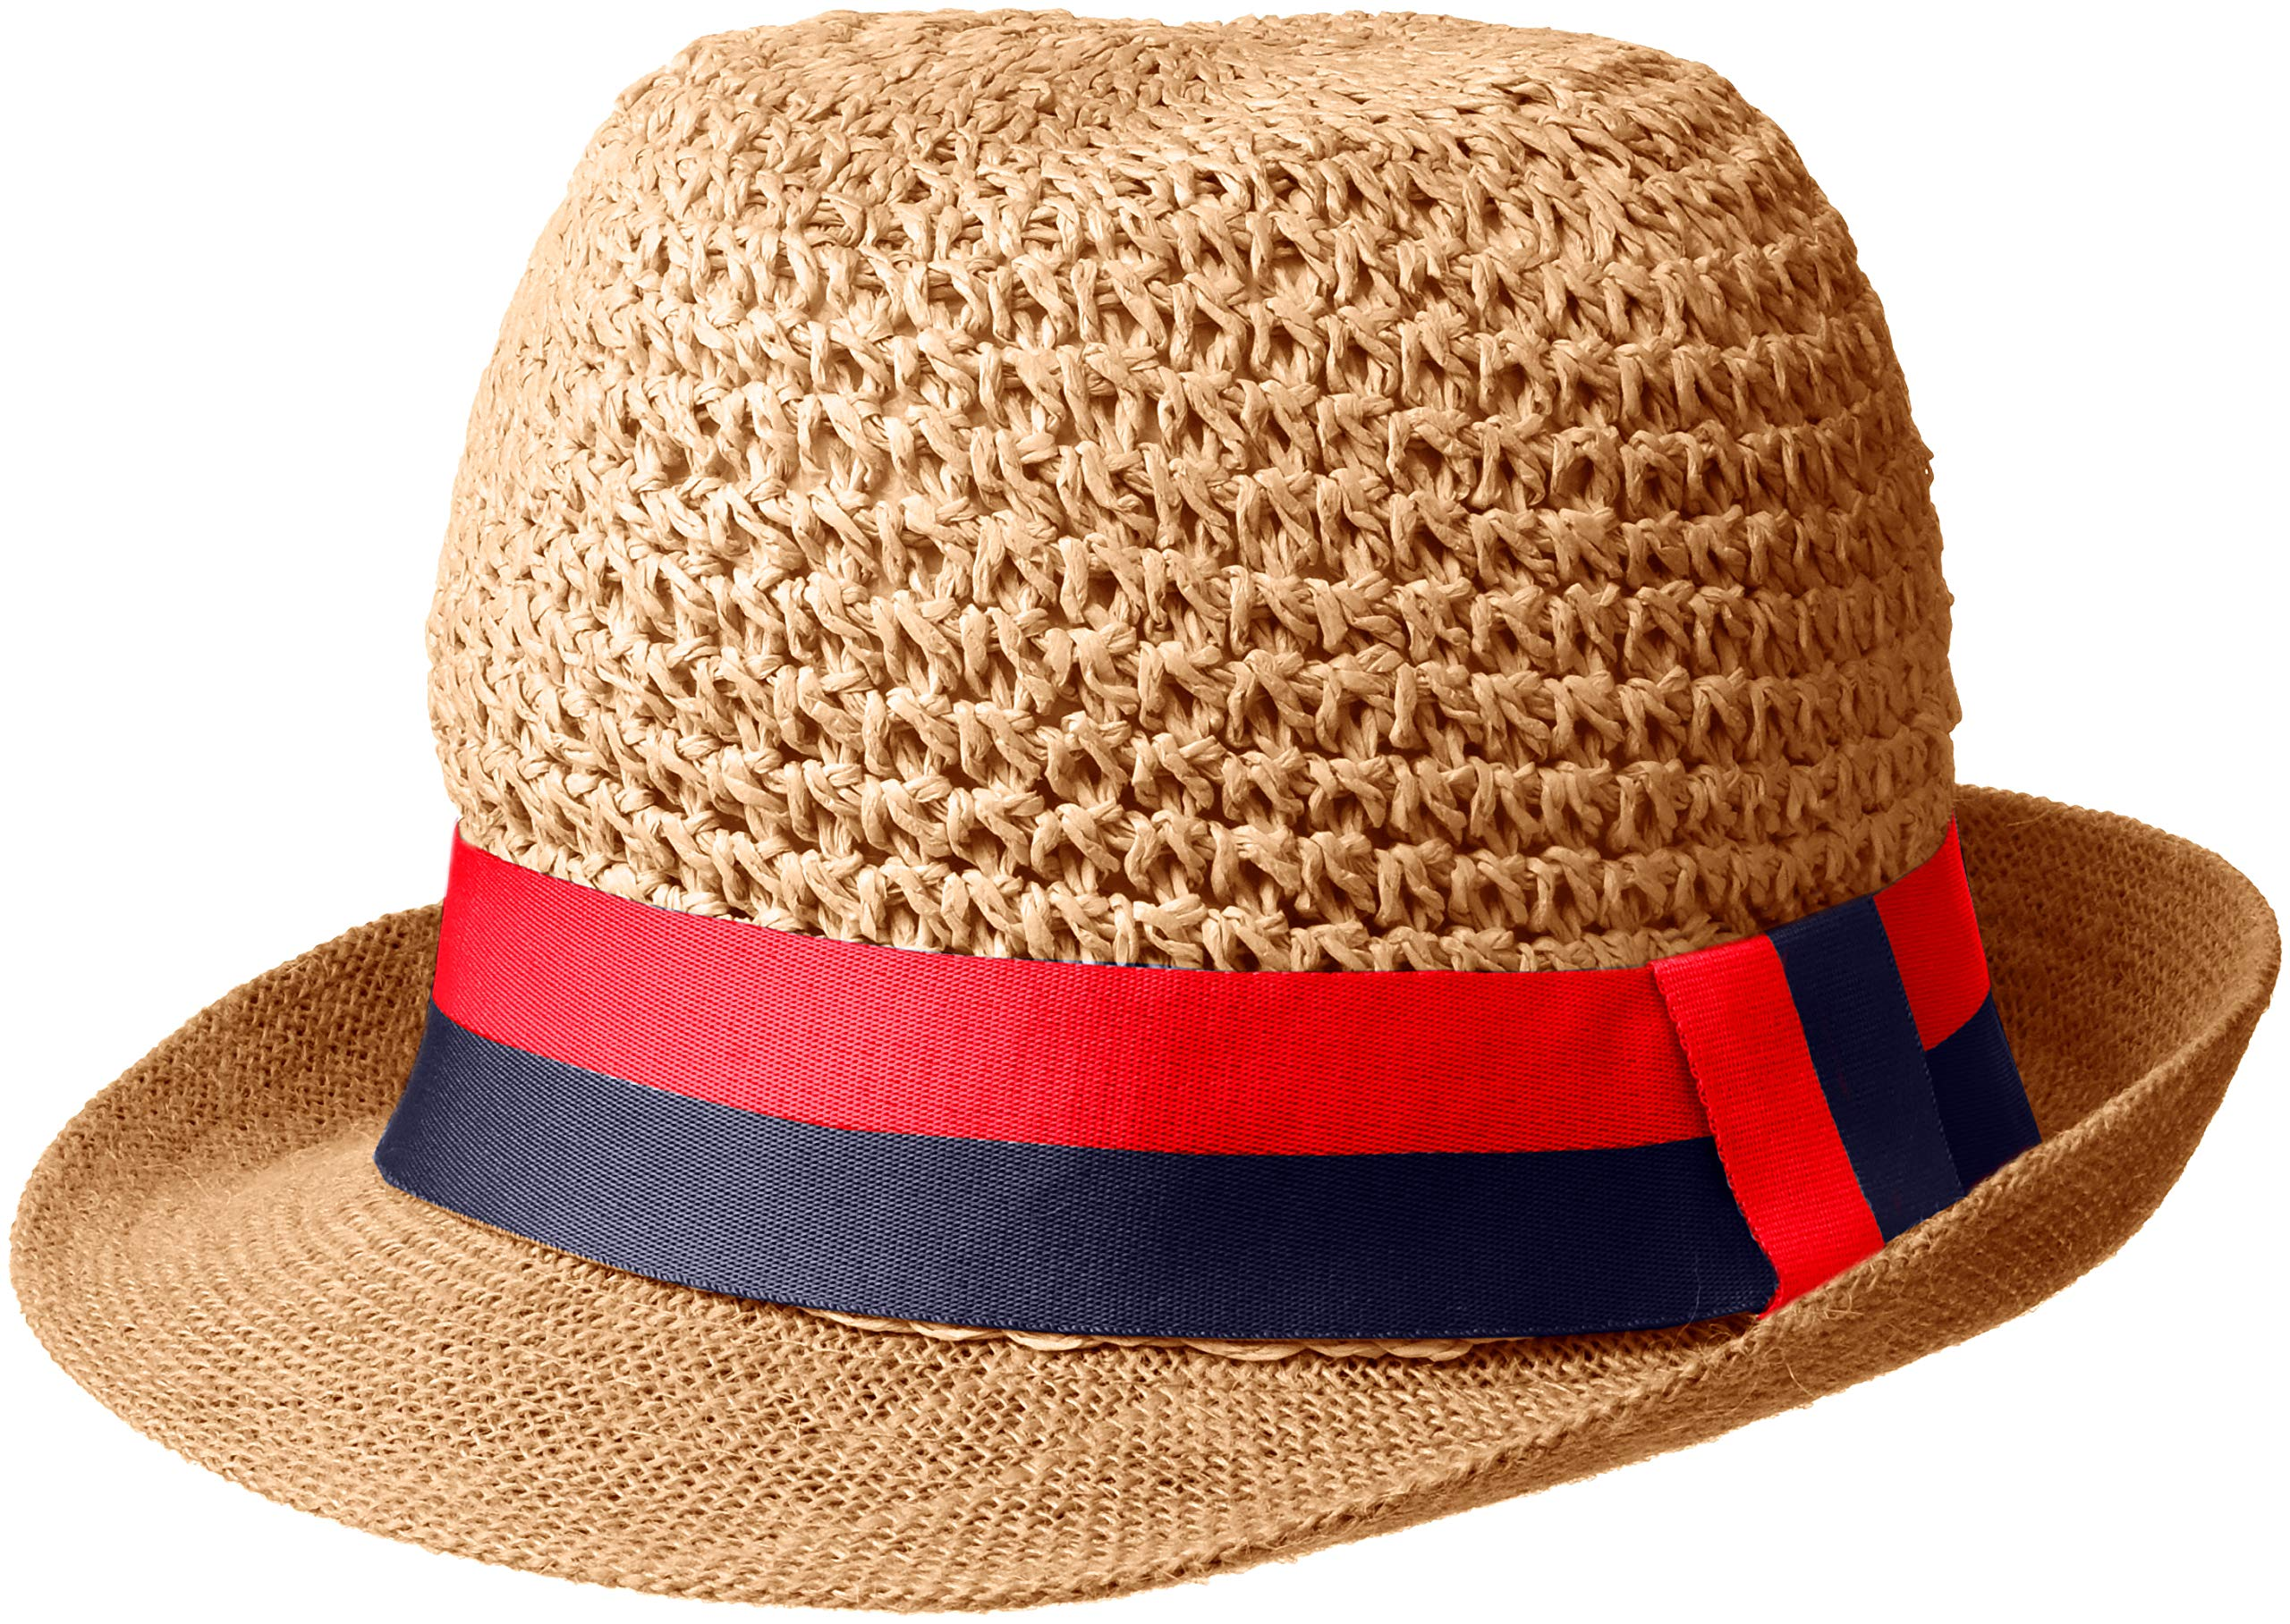 Steve Madden Women's Paper Crochet & Jute Short Brim Fedora with Two Tone Band, Navy One Size